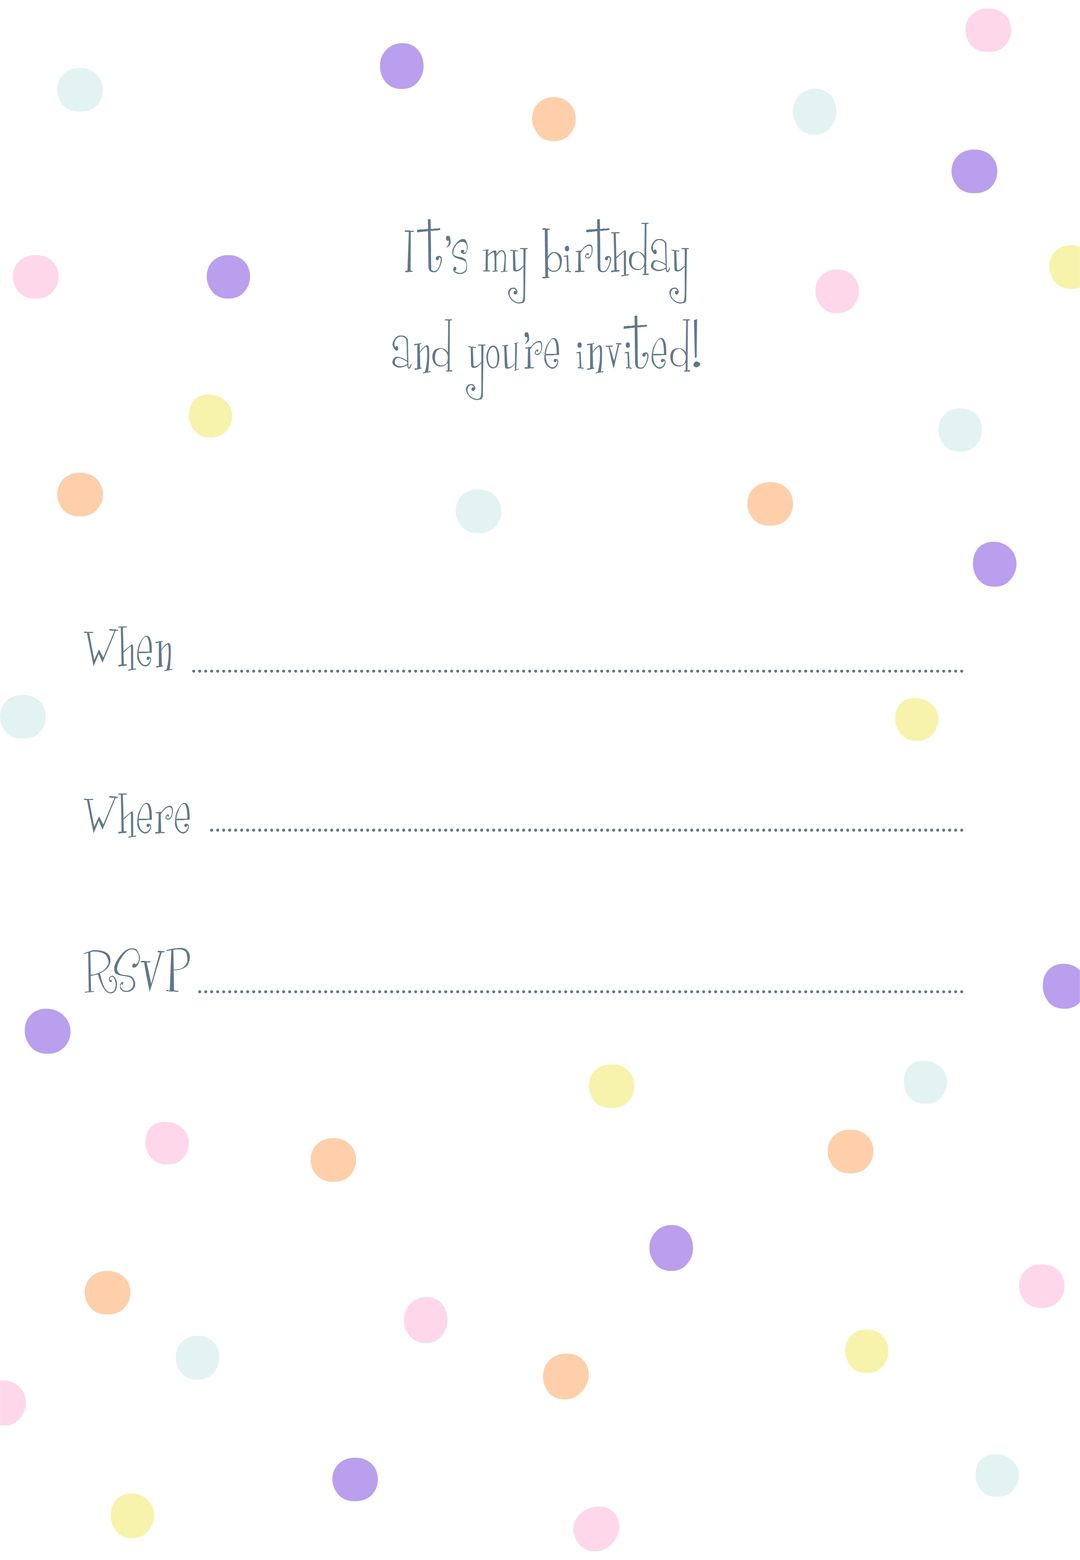 Beautiful #Birthday #Invitation #Printable Free At Http://www.greetingsisland.com/